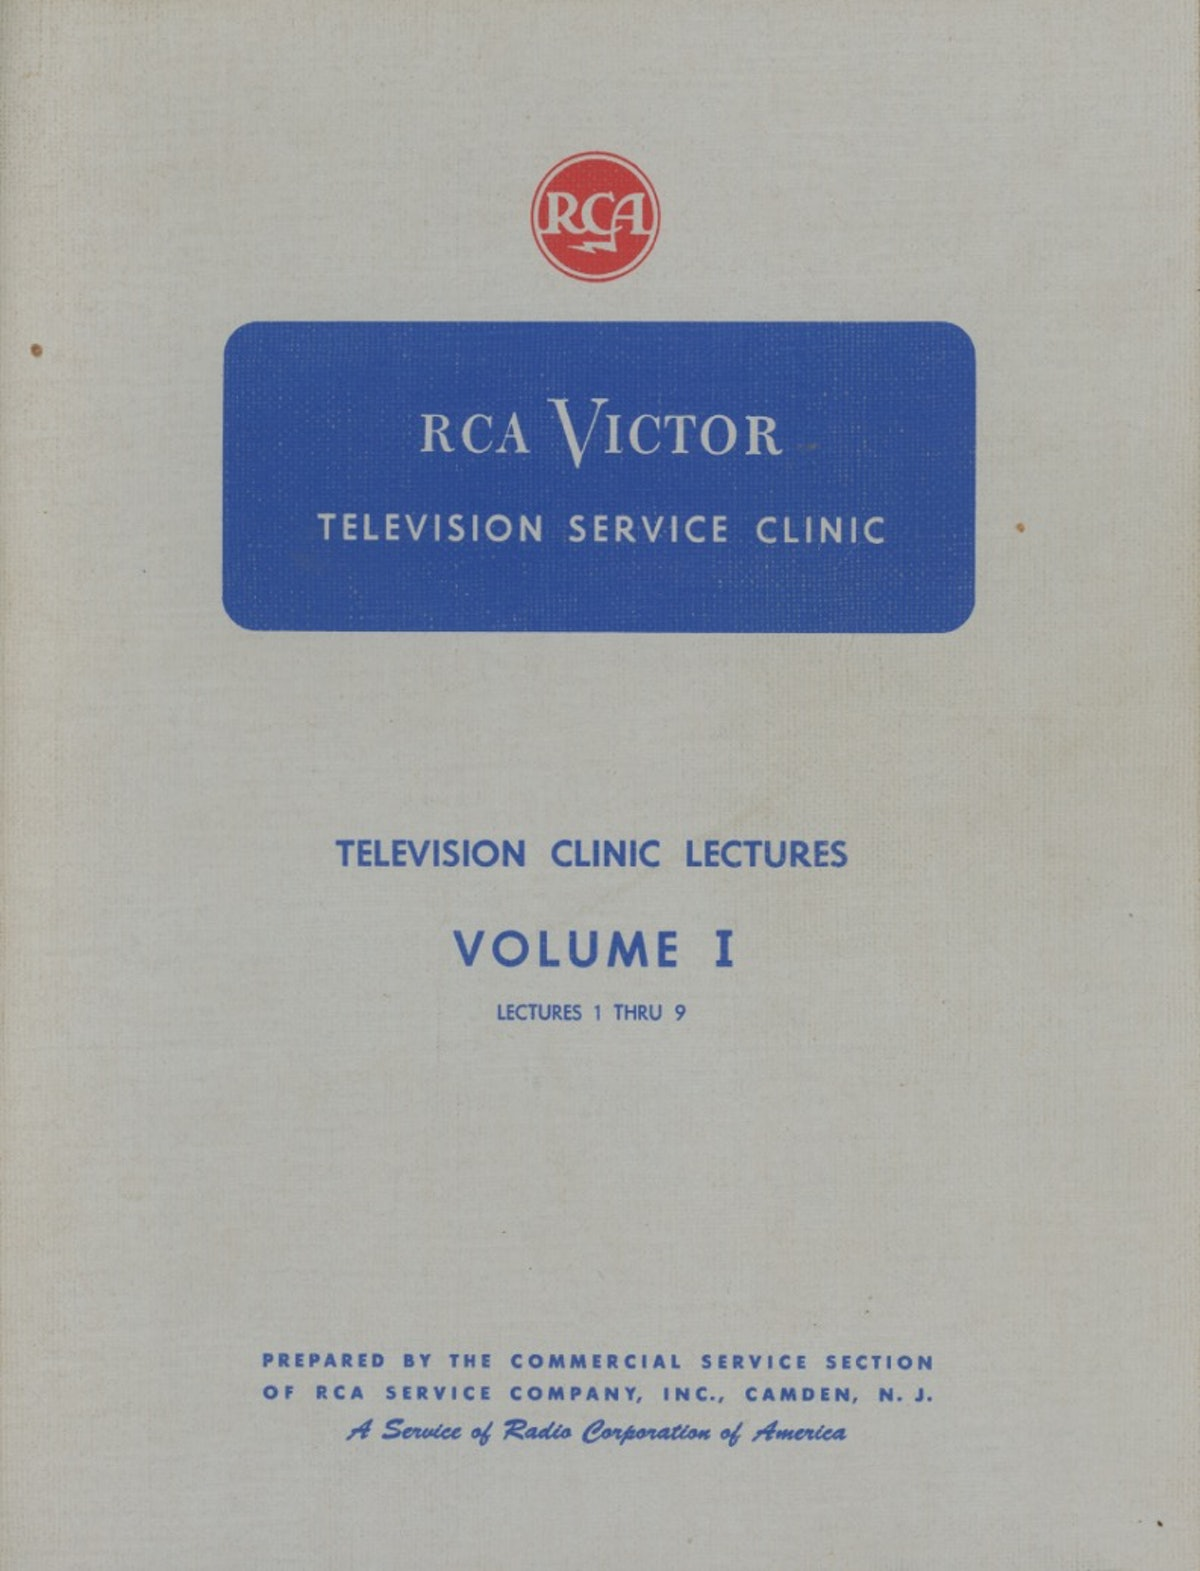 RCA Victor Television Service Clinic